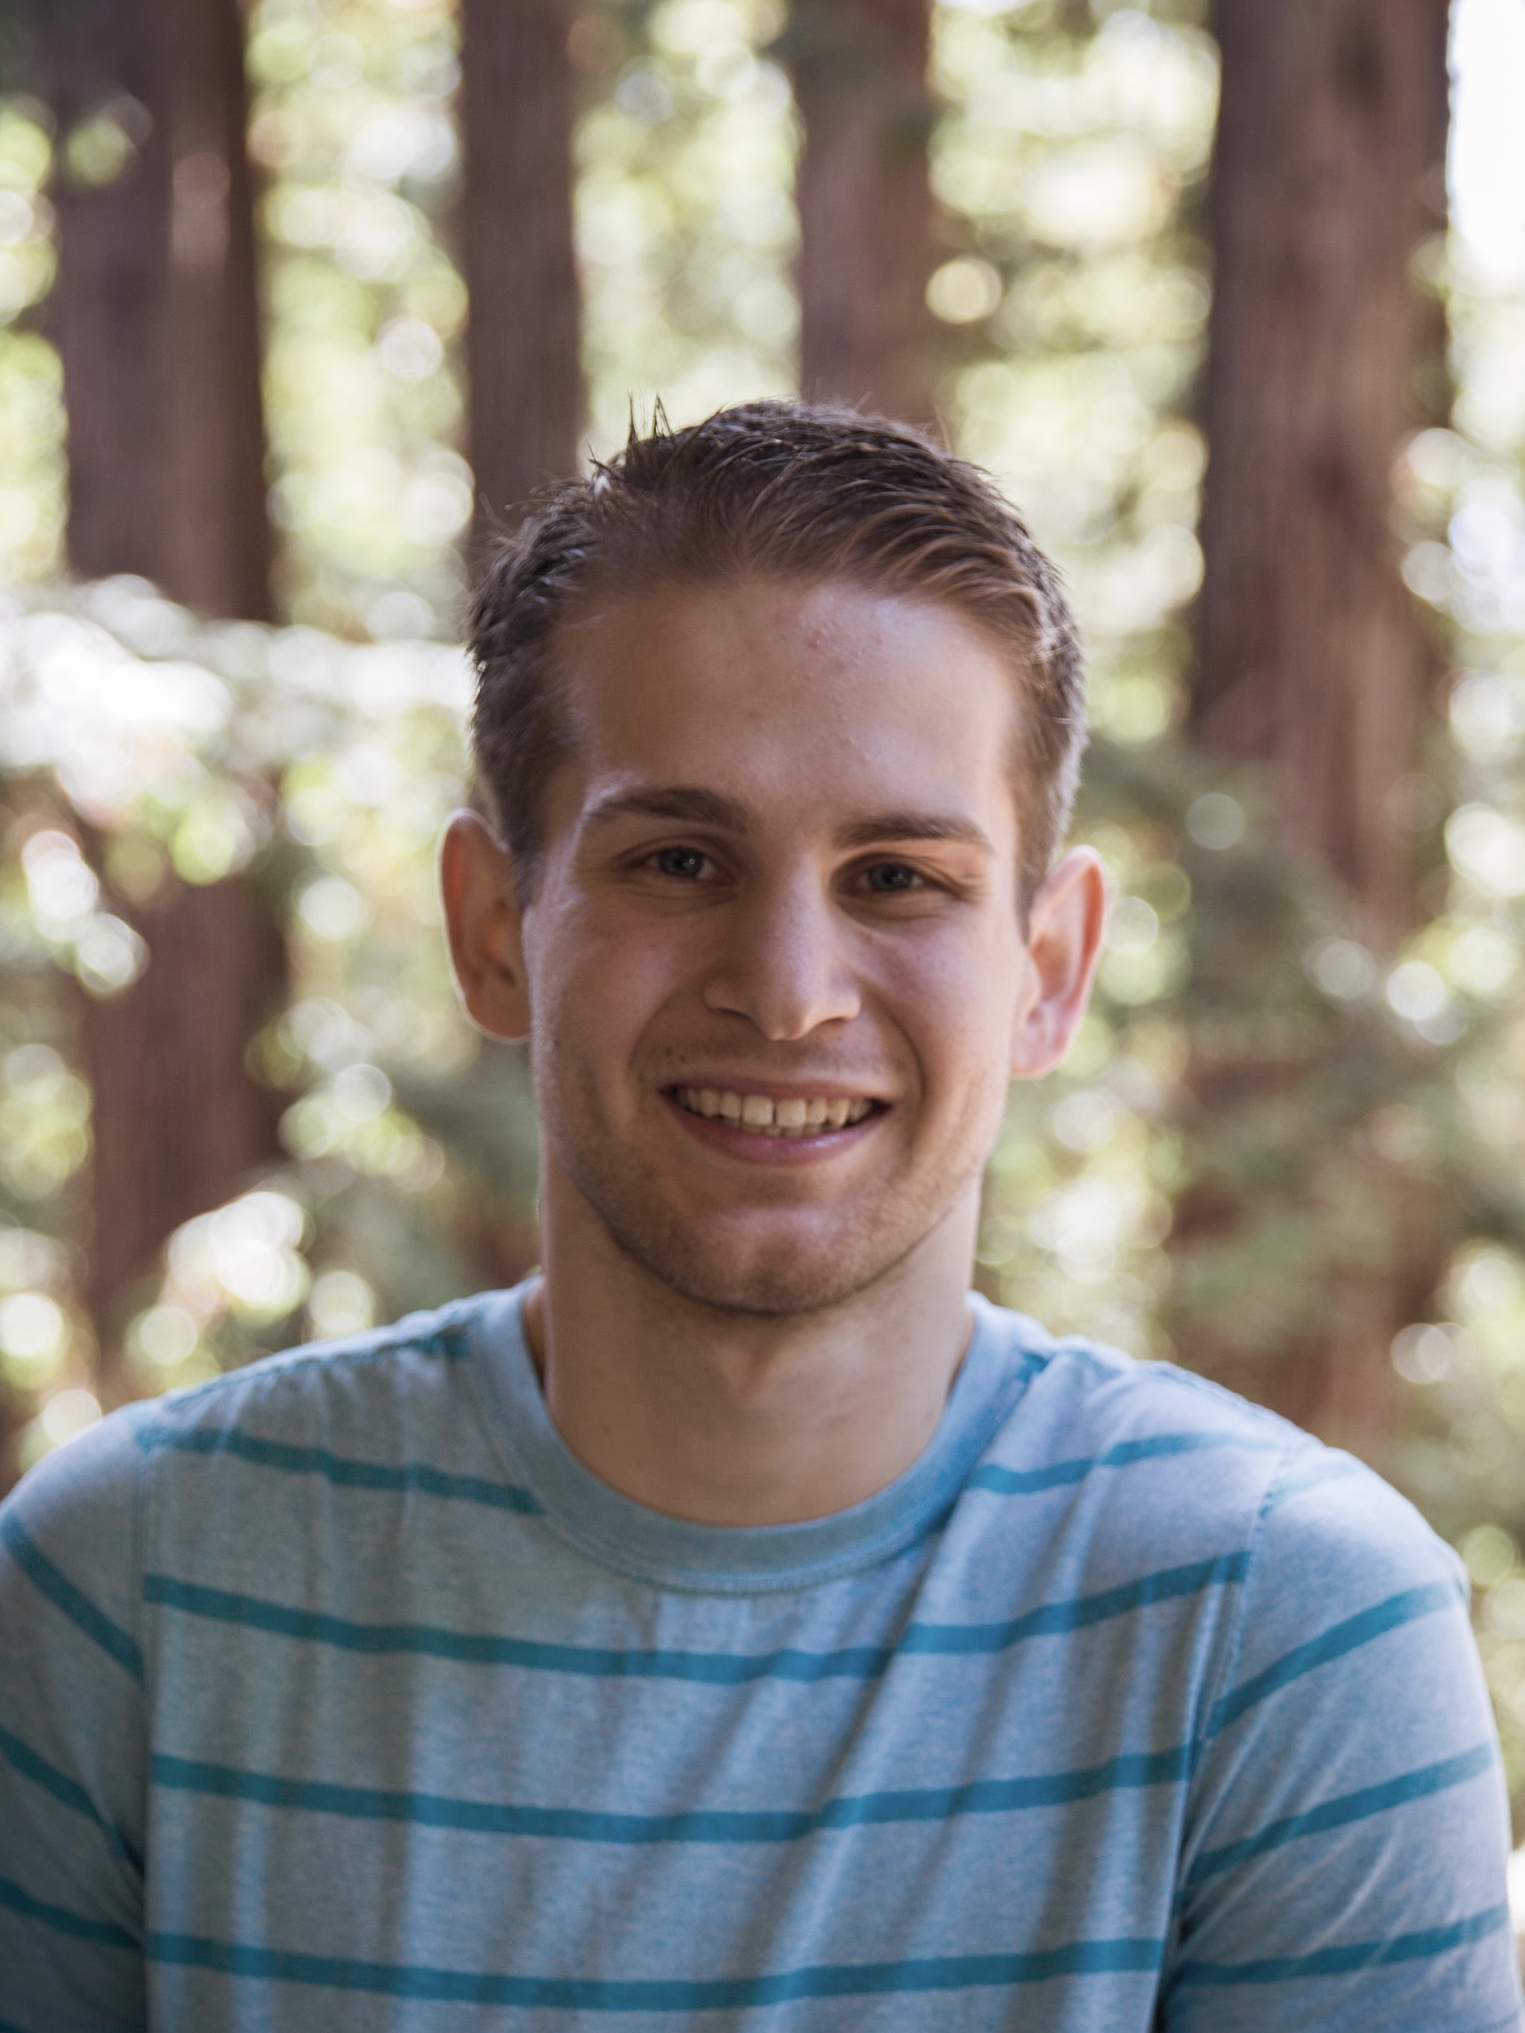 Maverick McLanahan (Physics)  Maverick received his  B.S.  and  M.S.  in  Physics  from  WWU (2015)  and  UCSC (2018)  respectively. He is currently pursuing his  Ph.D  in  Physics at UCSC . His research focuses on fabrication and characterization of phononic metamaterials for acousto-fluidics, surface plasmon resonance devices and uses of novel biophotonic sensors for electrophysiological applications.